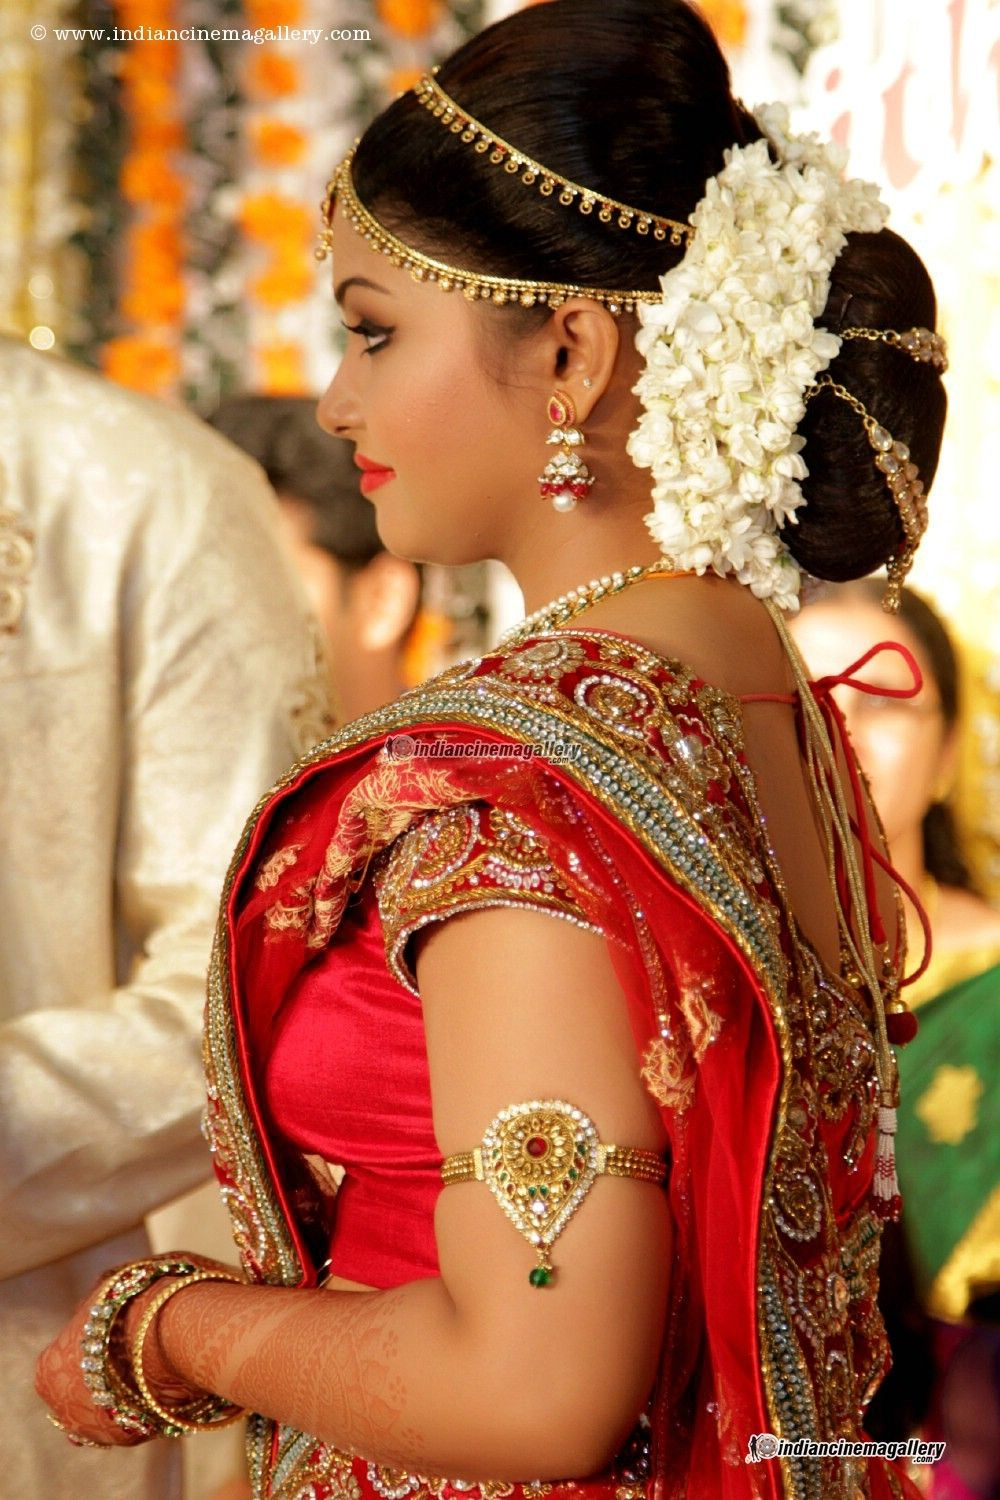 Indian wedding hairstyles bridal hairstyles for indian wedding